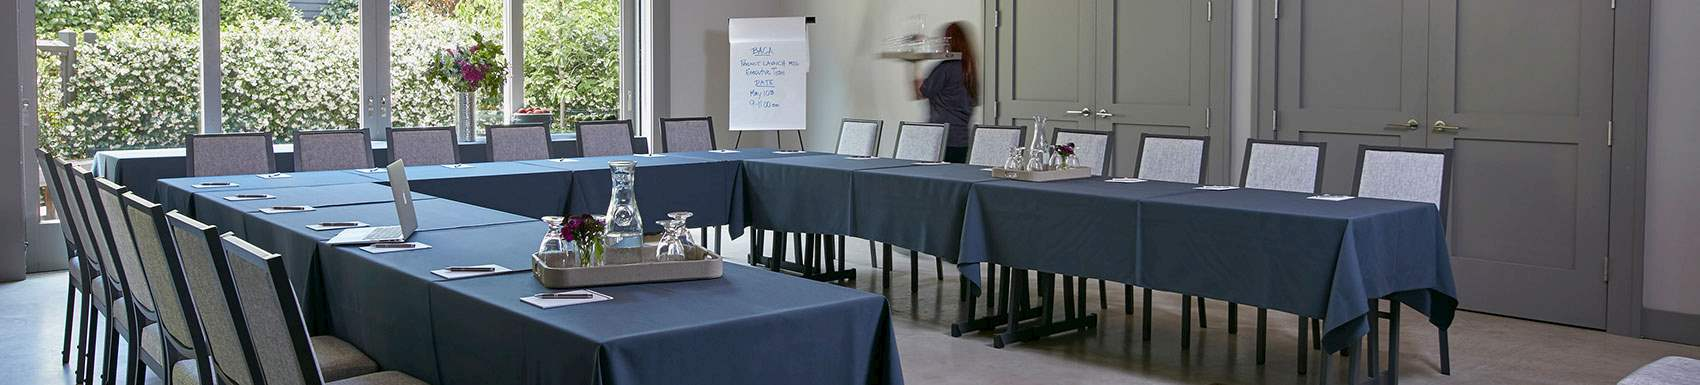 SENZA Hotel, Napa offers Meetings & Events Facilities